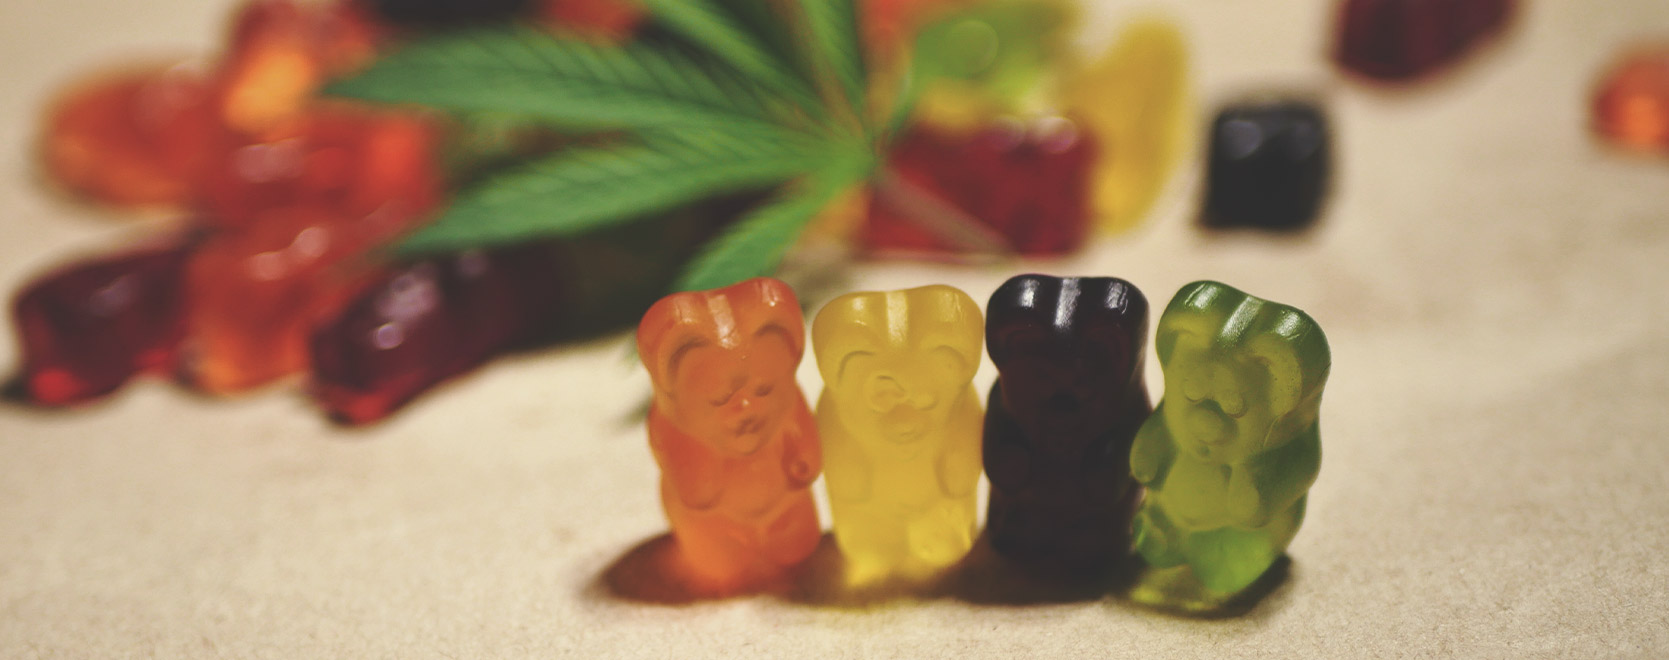 What are the bad side effects of cannabis edibles?